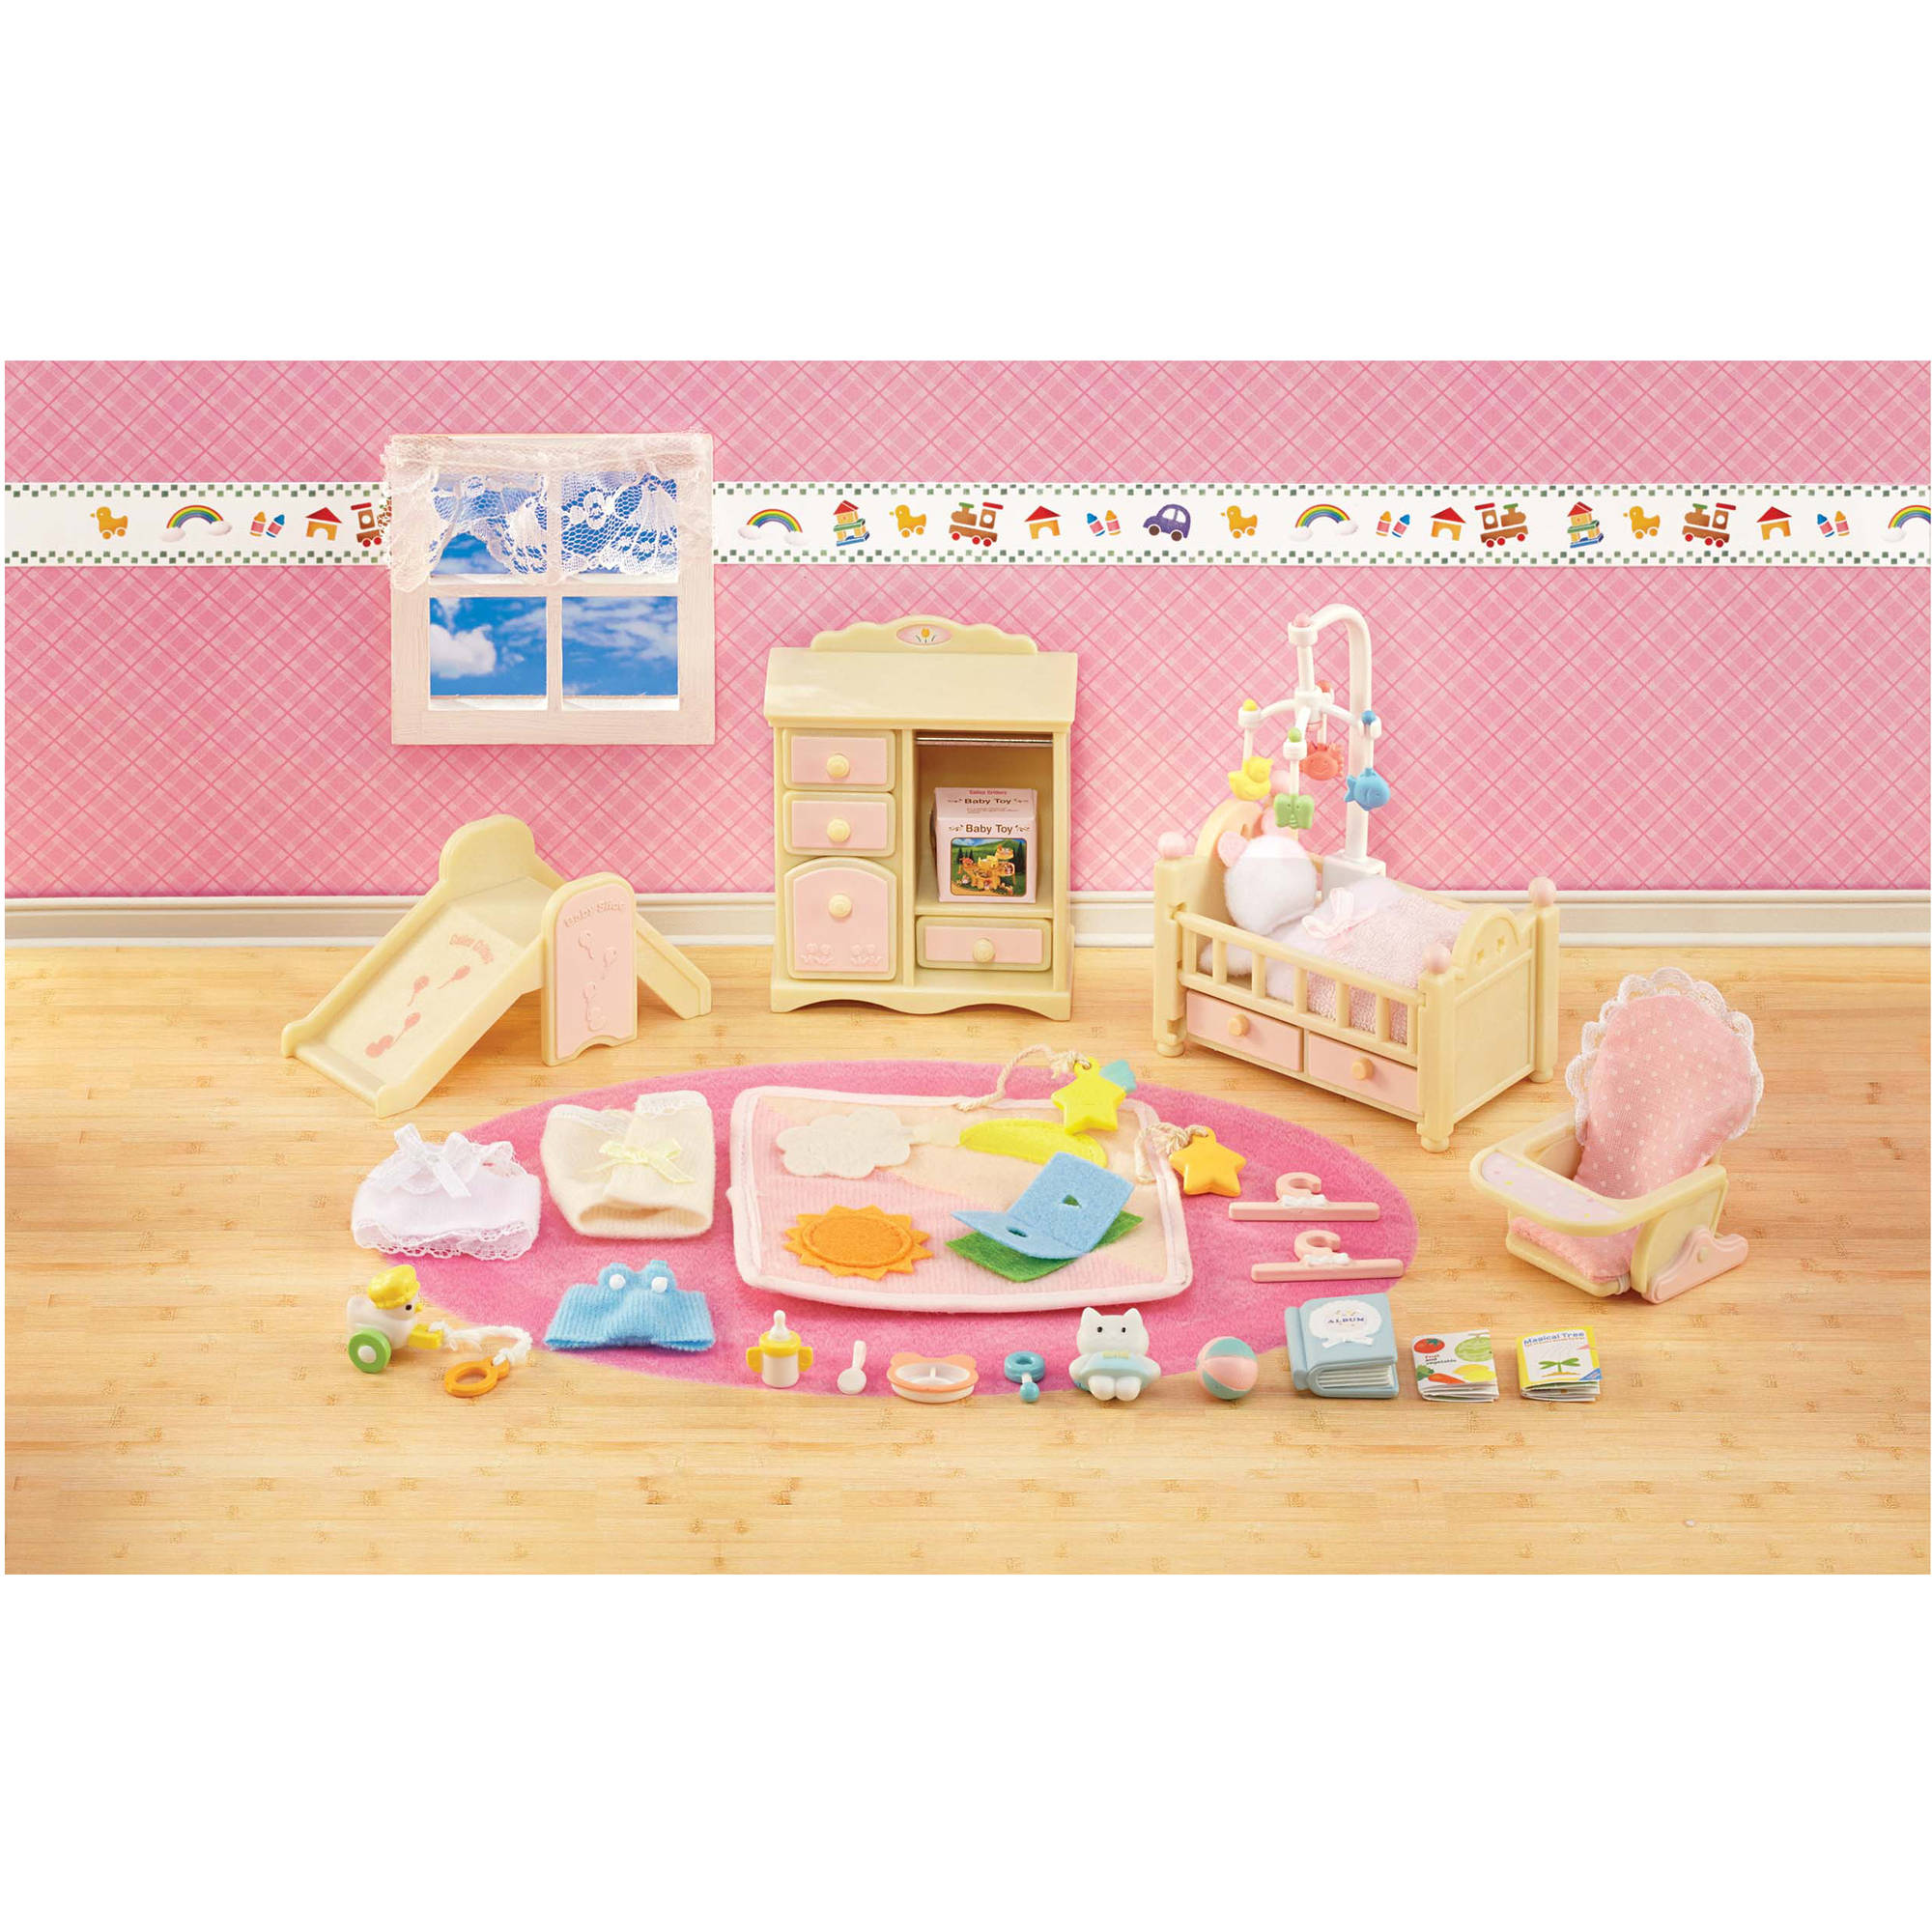 Calico Critters Baby S Nursery Set